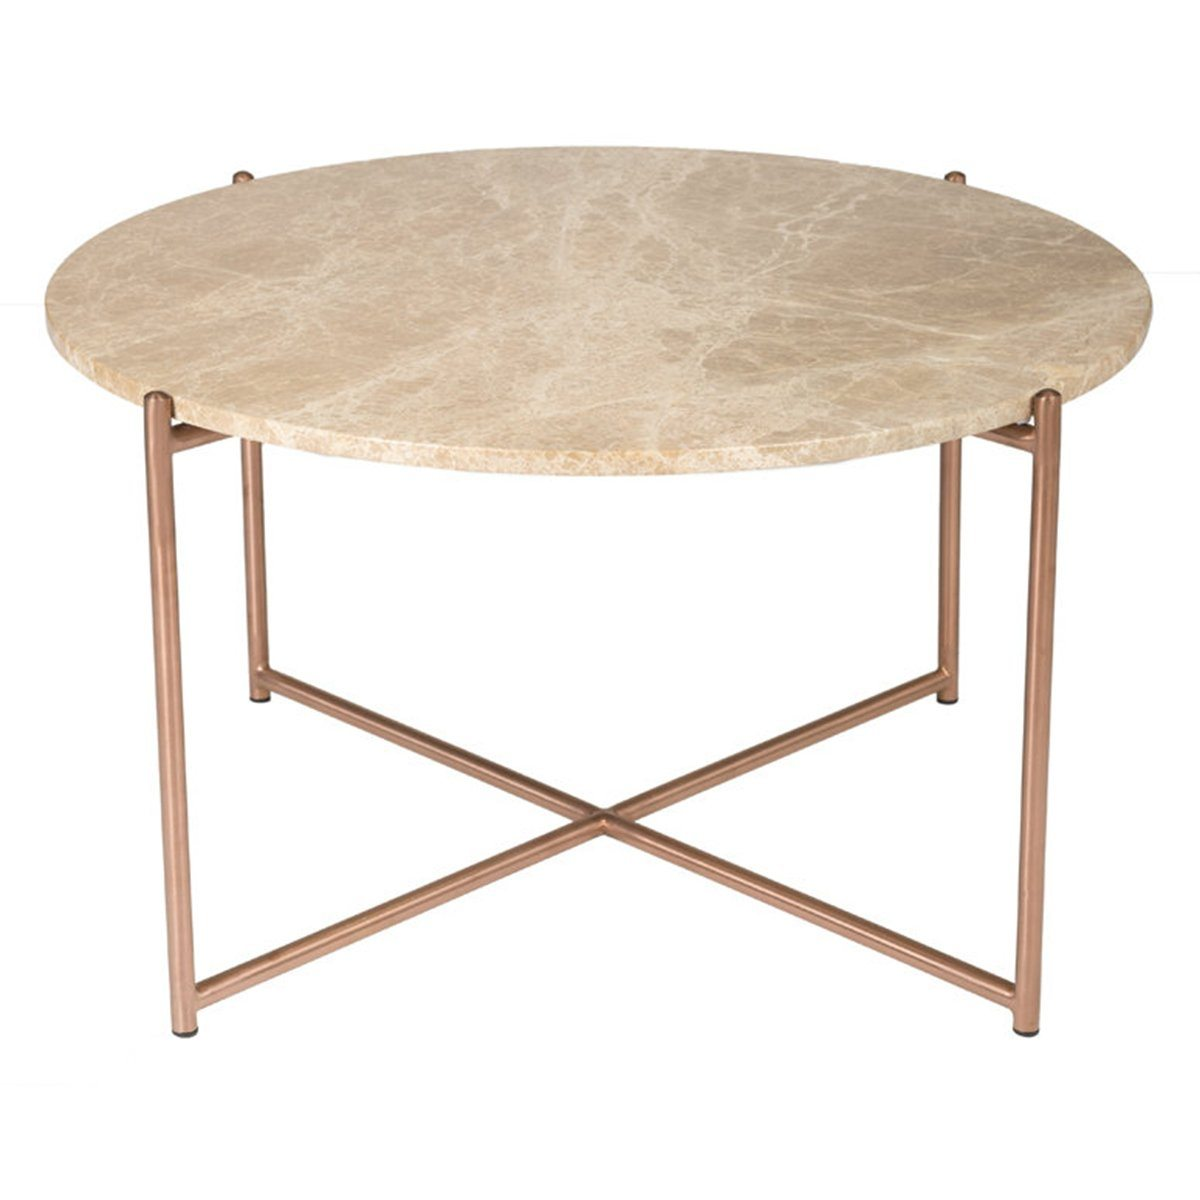 ROUND COFFEE TABLE - BROWN MARBLE + BRUSHED BRASS - Showhome Furniture